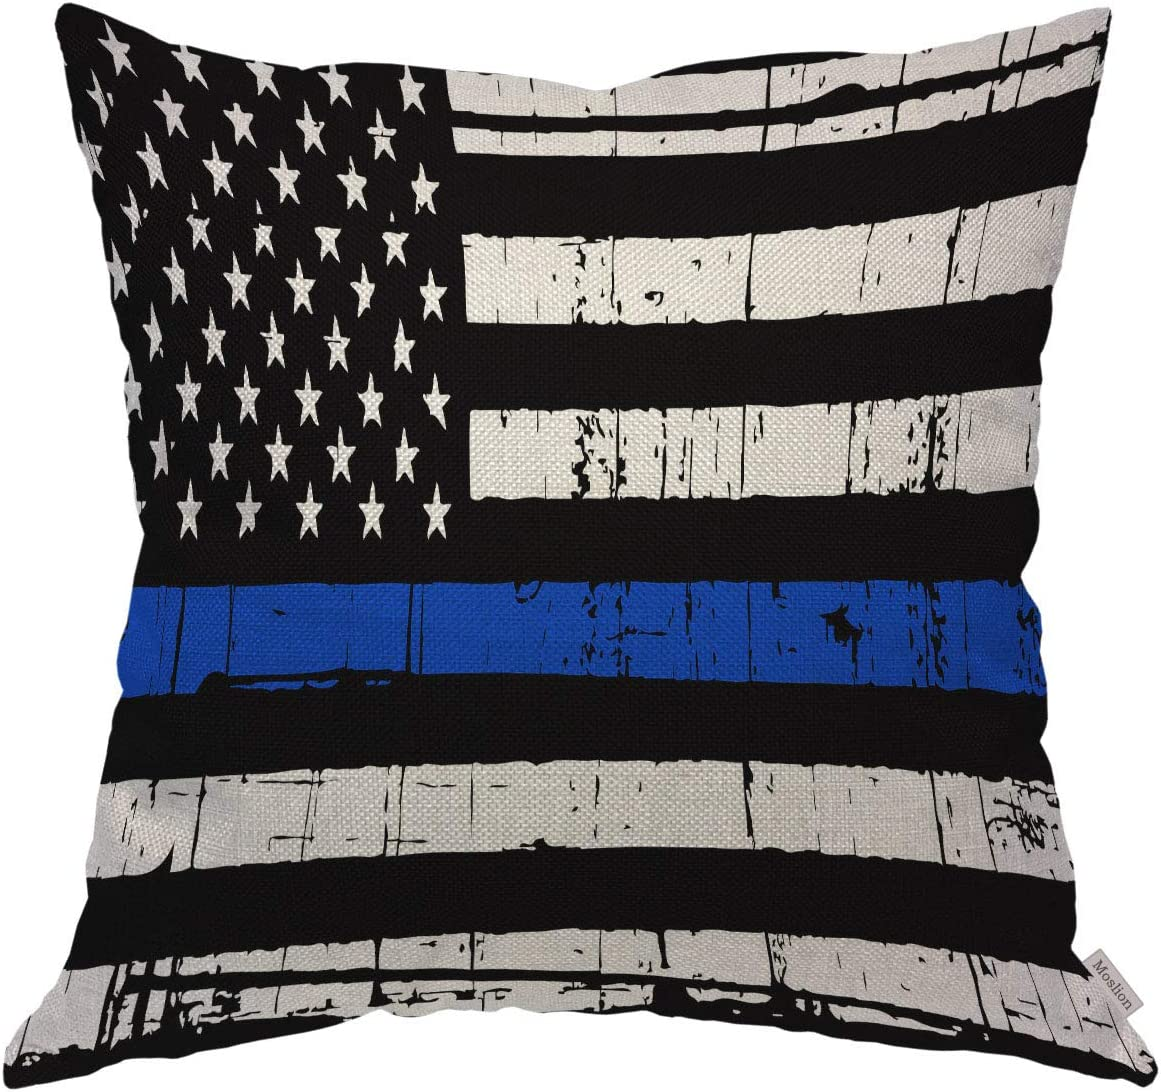 Moslion Throw Pillow Cover Case Vintage Weathered Thin Blue Line US Flag Law Enforcement Cotton Linen Cushion Covers for Couch/Sofa/Kitchen/Car/Boy Gilrs Bedroom Livingroom 18 x 18 inch Pillow case